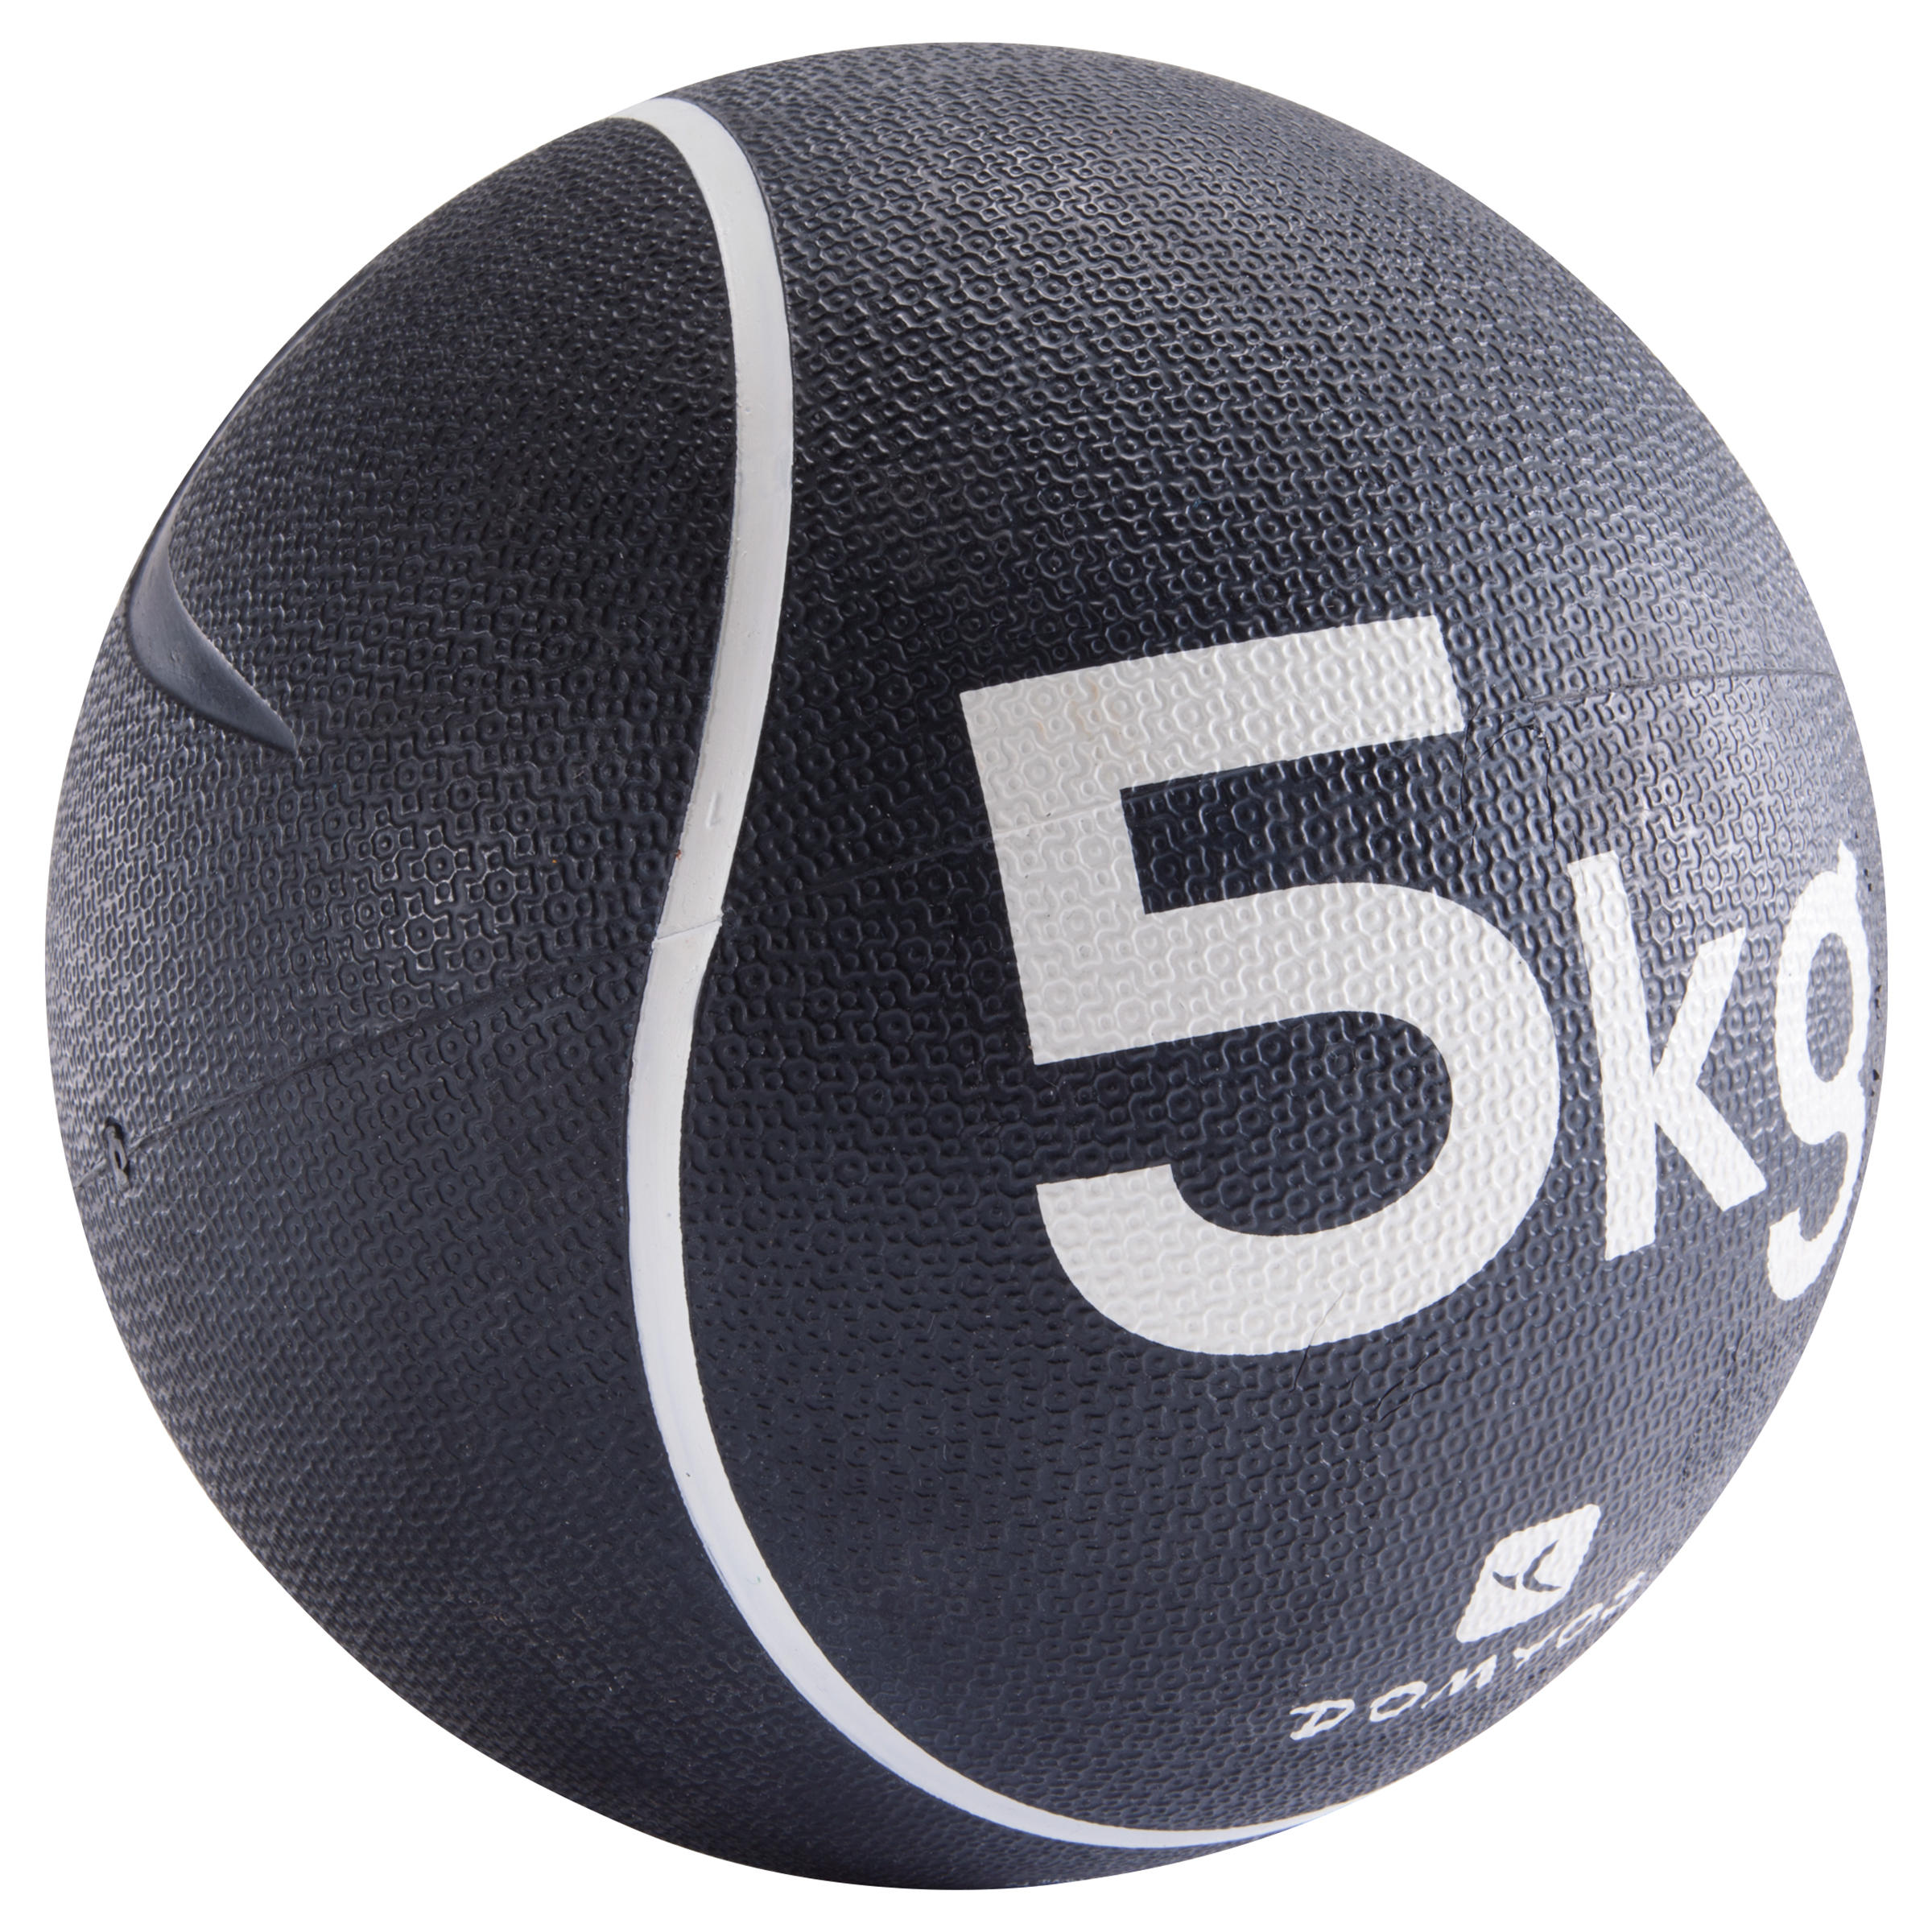 Pilates Toning Weighted Medicine Ball 5 kg